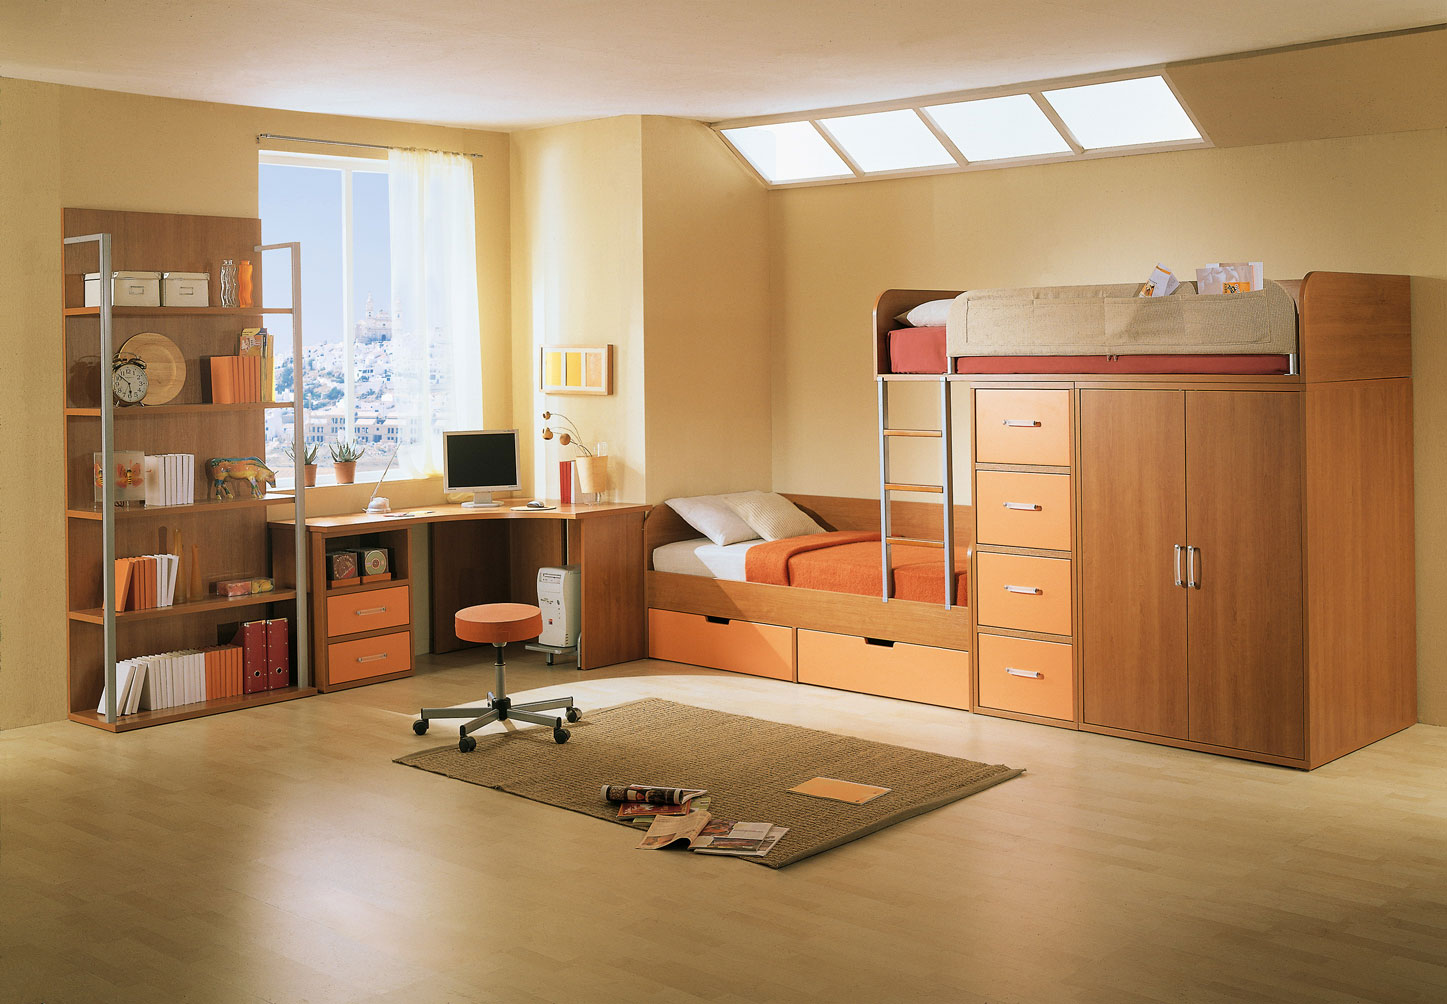 Kid's Rooms From Russian Maker: